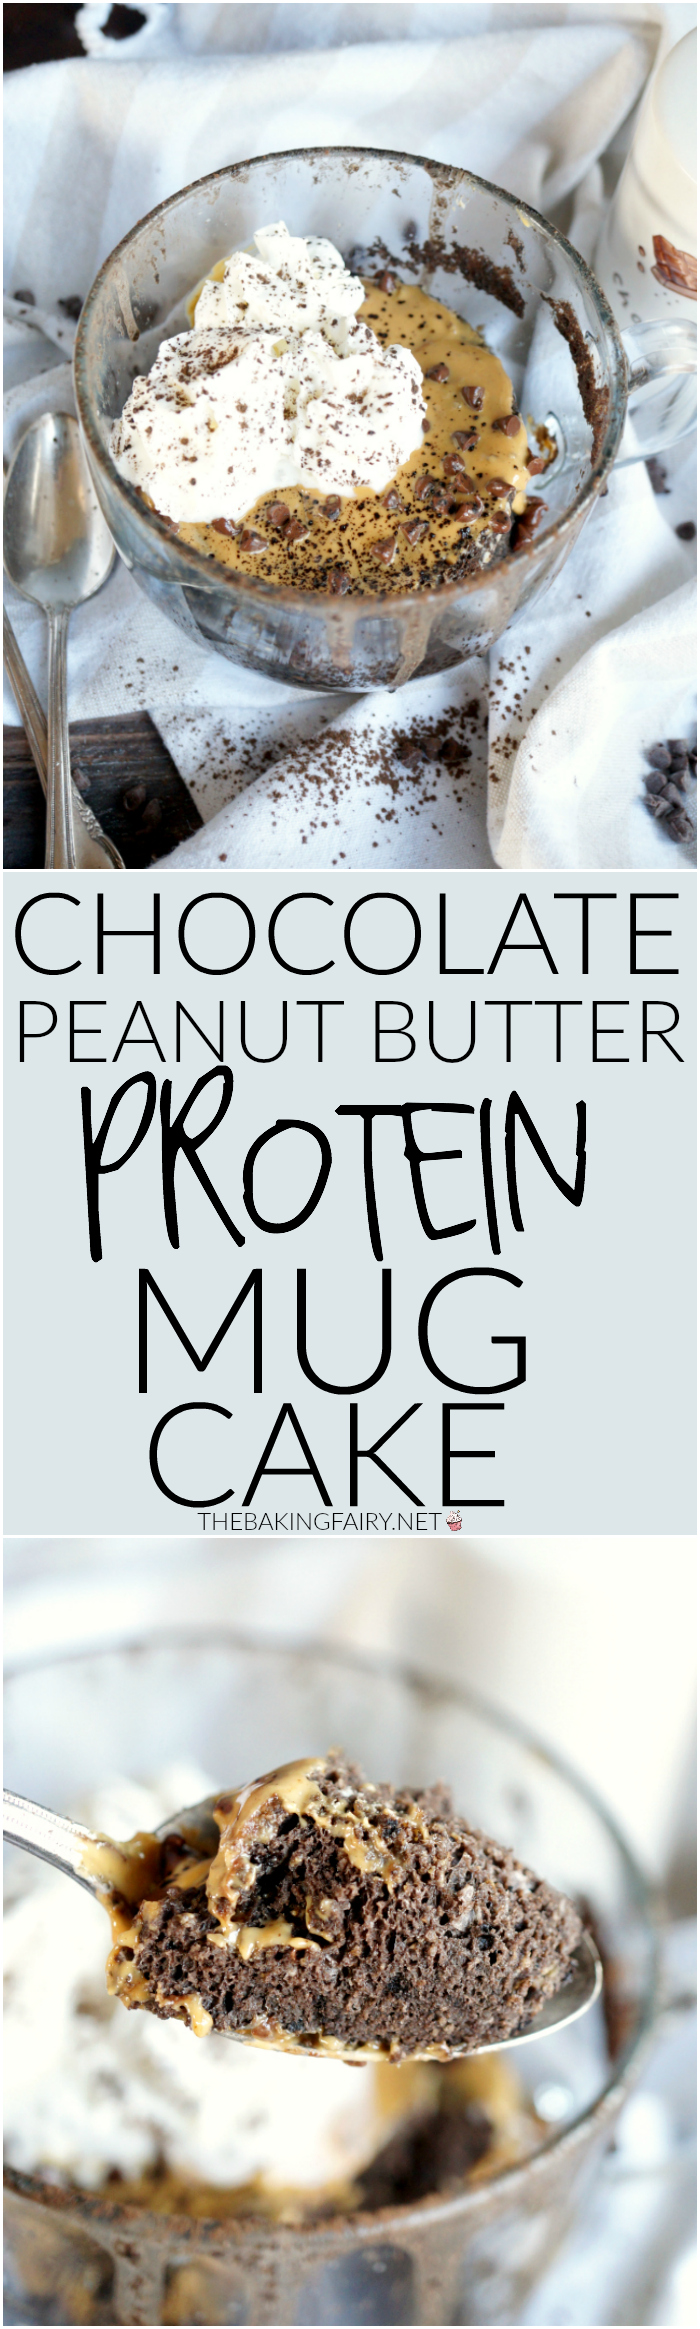 chocolate peanut butter protein mug cake | The Baking Fairy